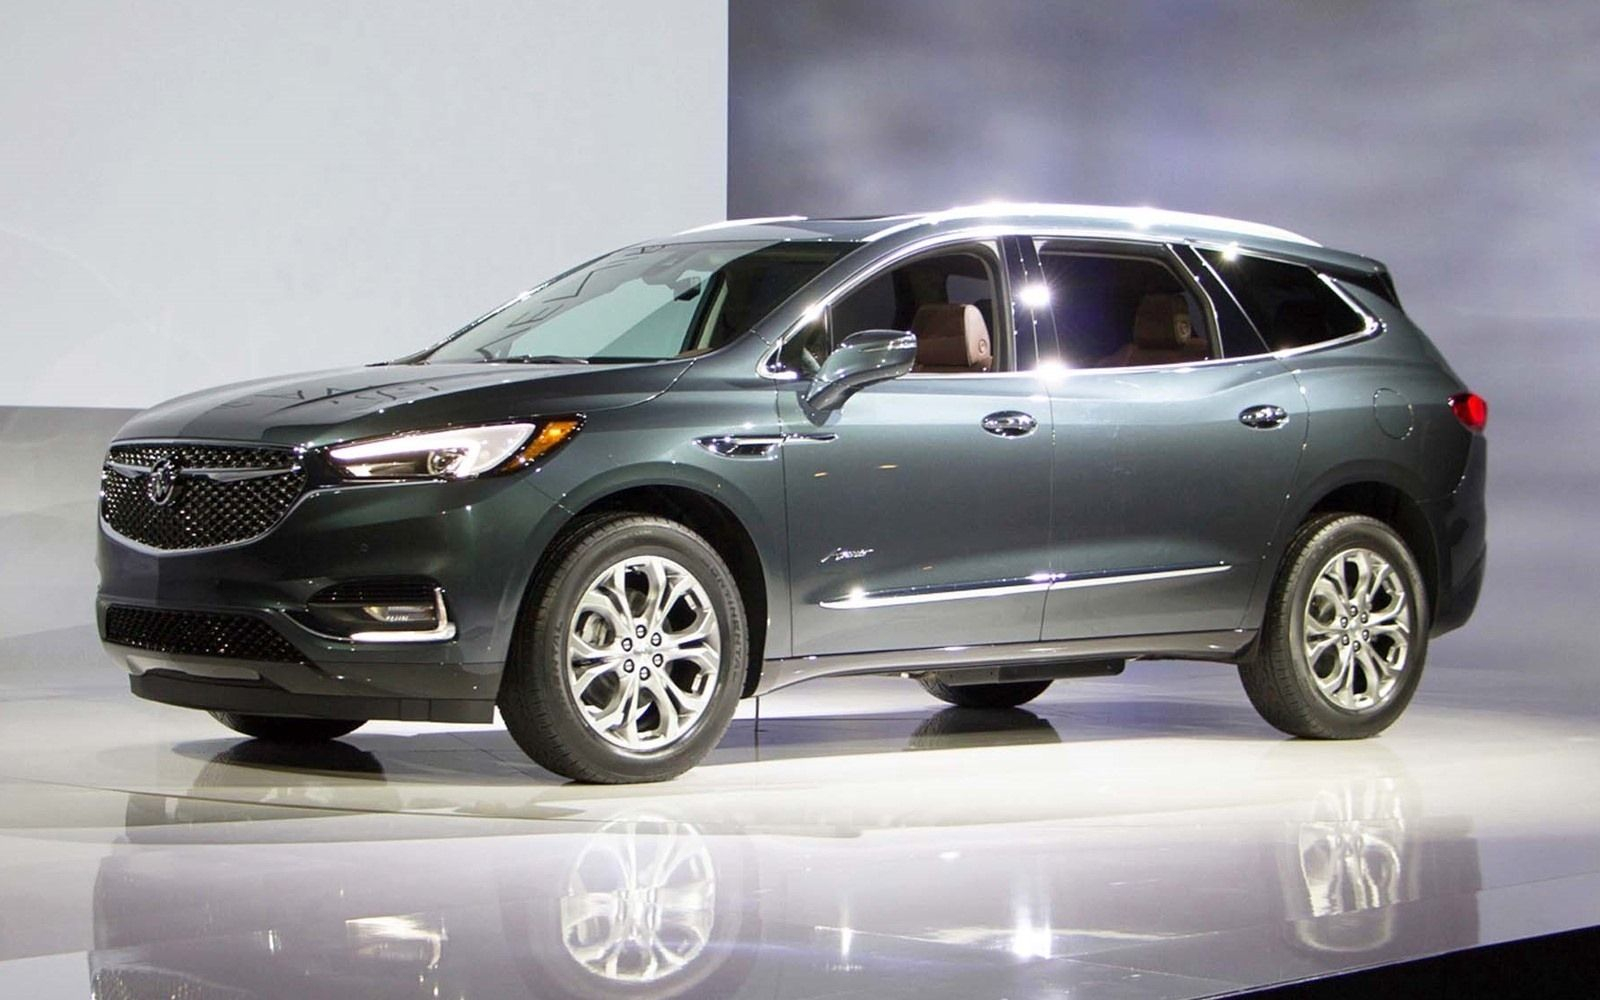 90 The Best 2020 Buick Enclave Spy Photos Rumors